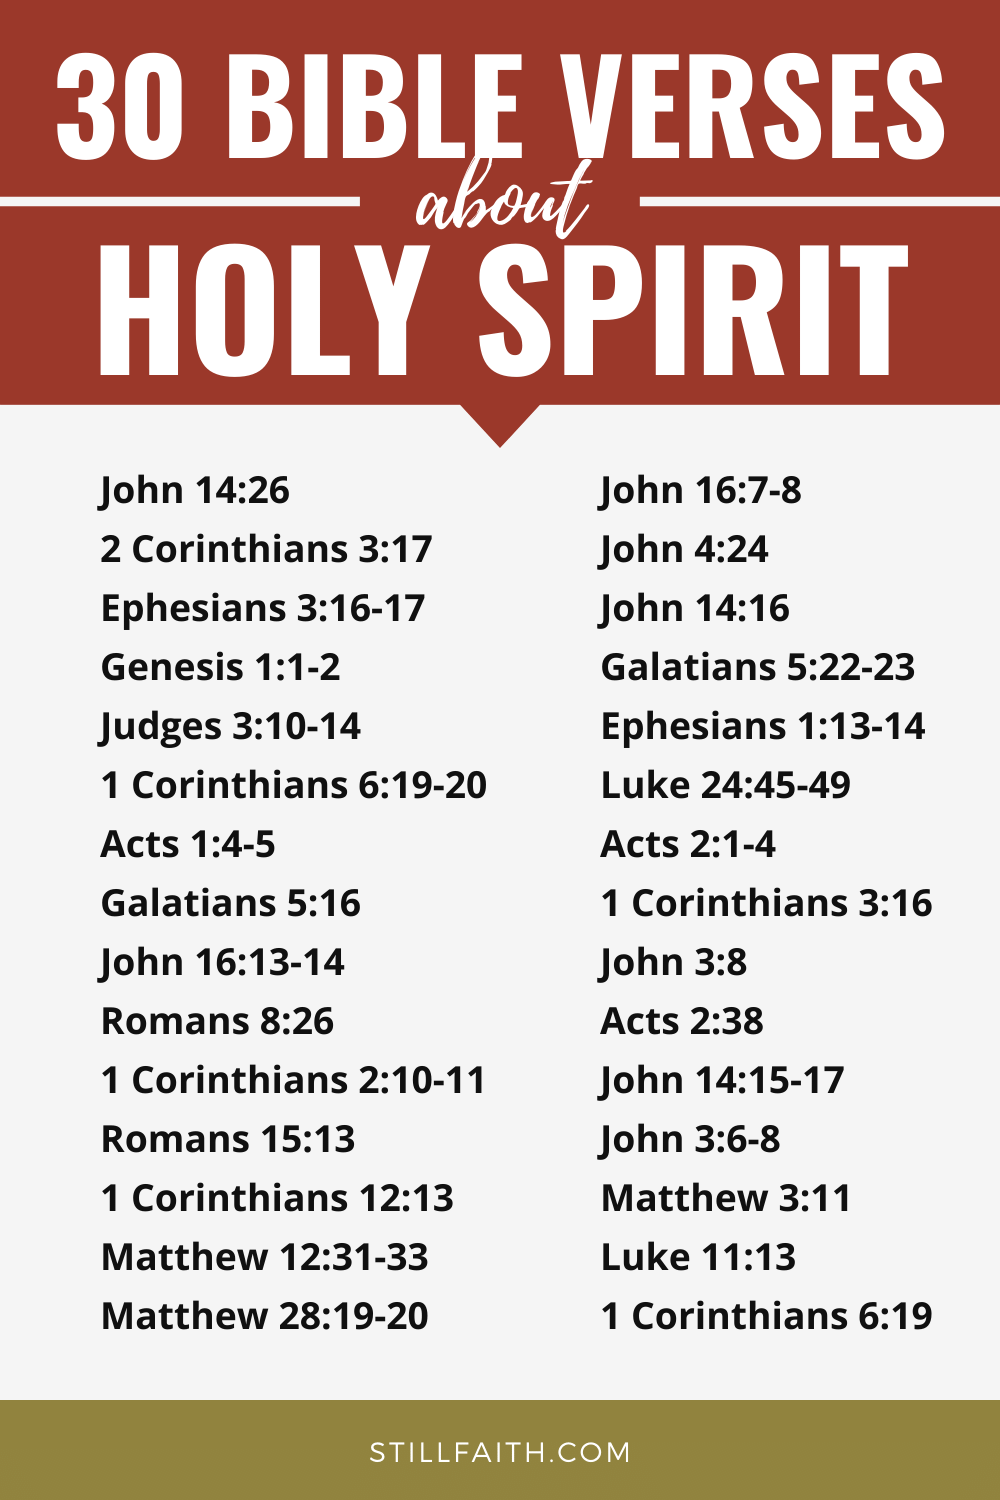 203 Bible Verses about the Holy Spirit